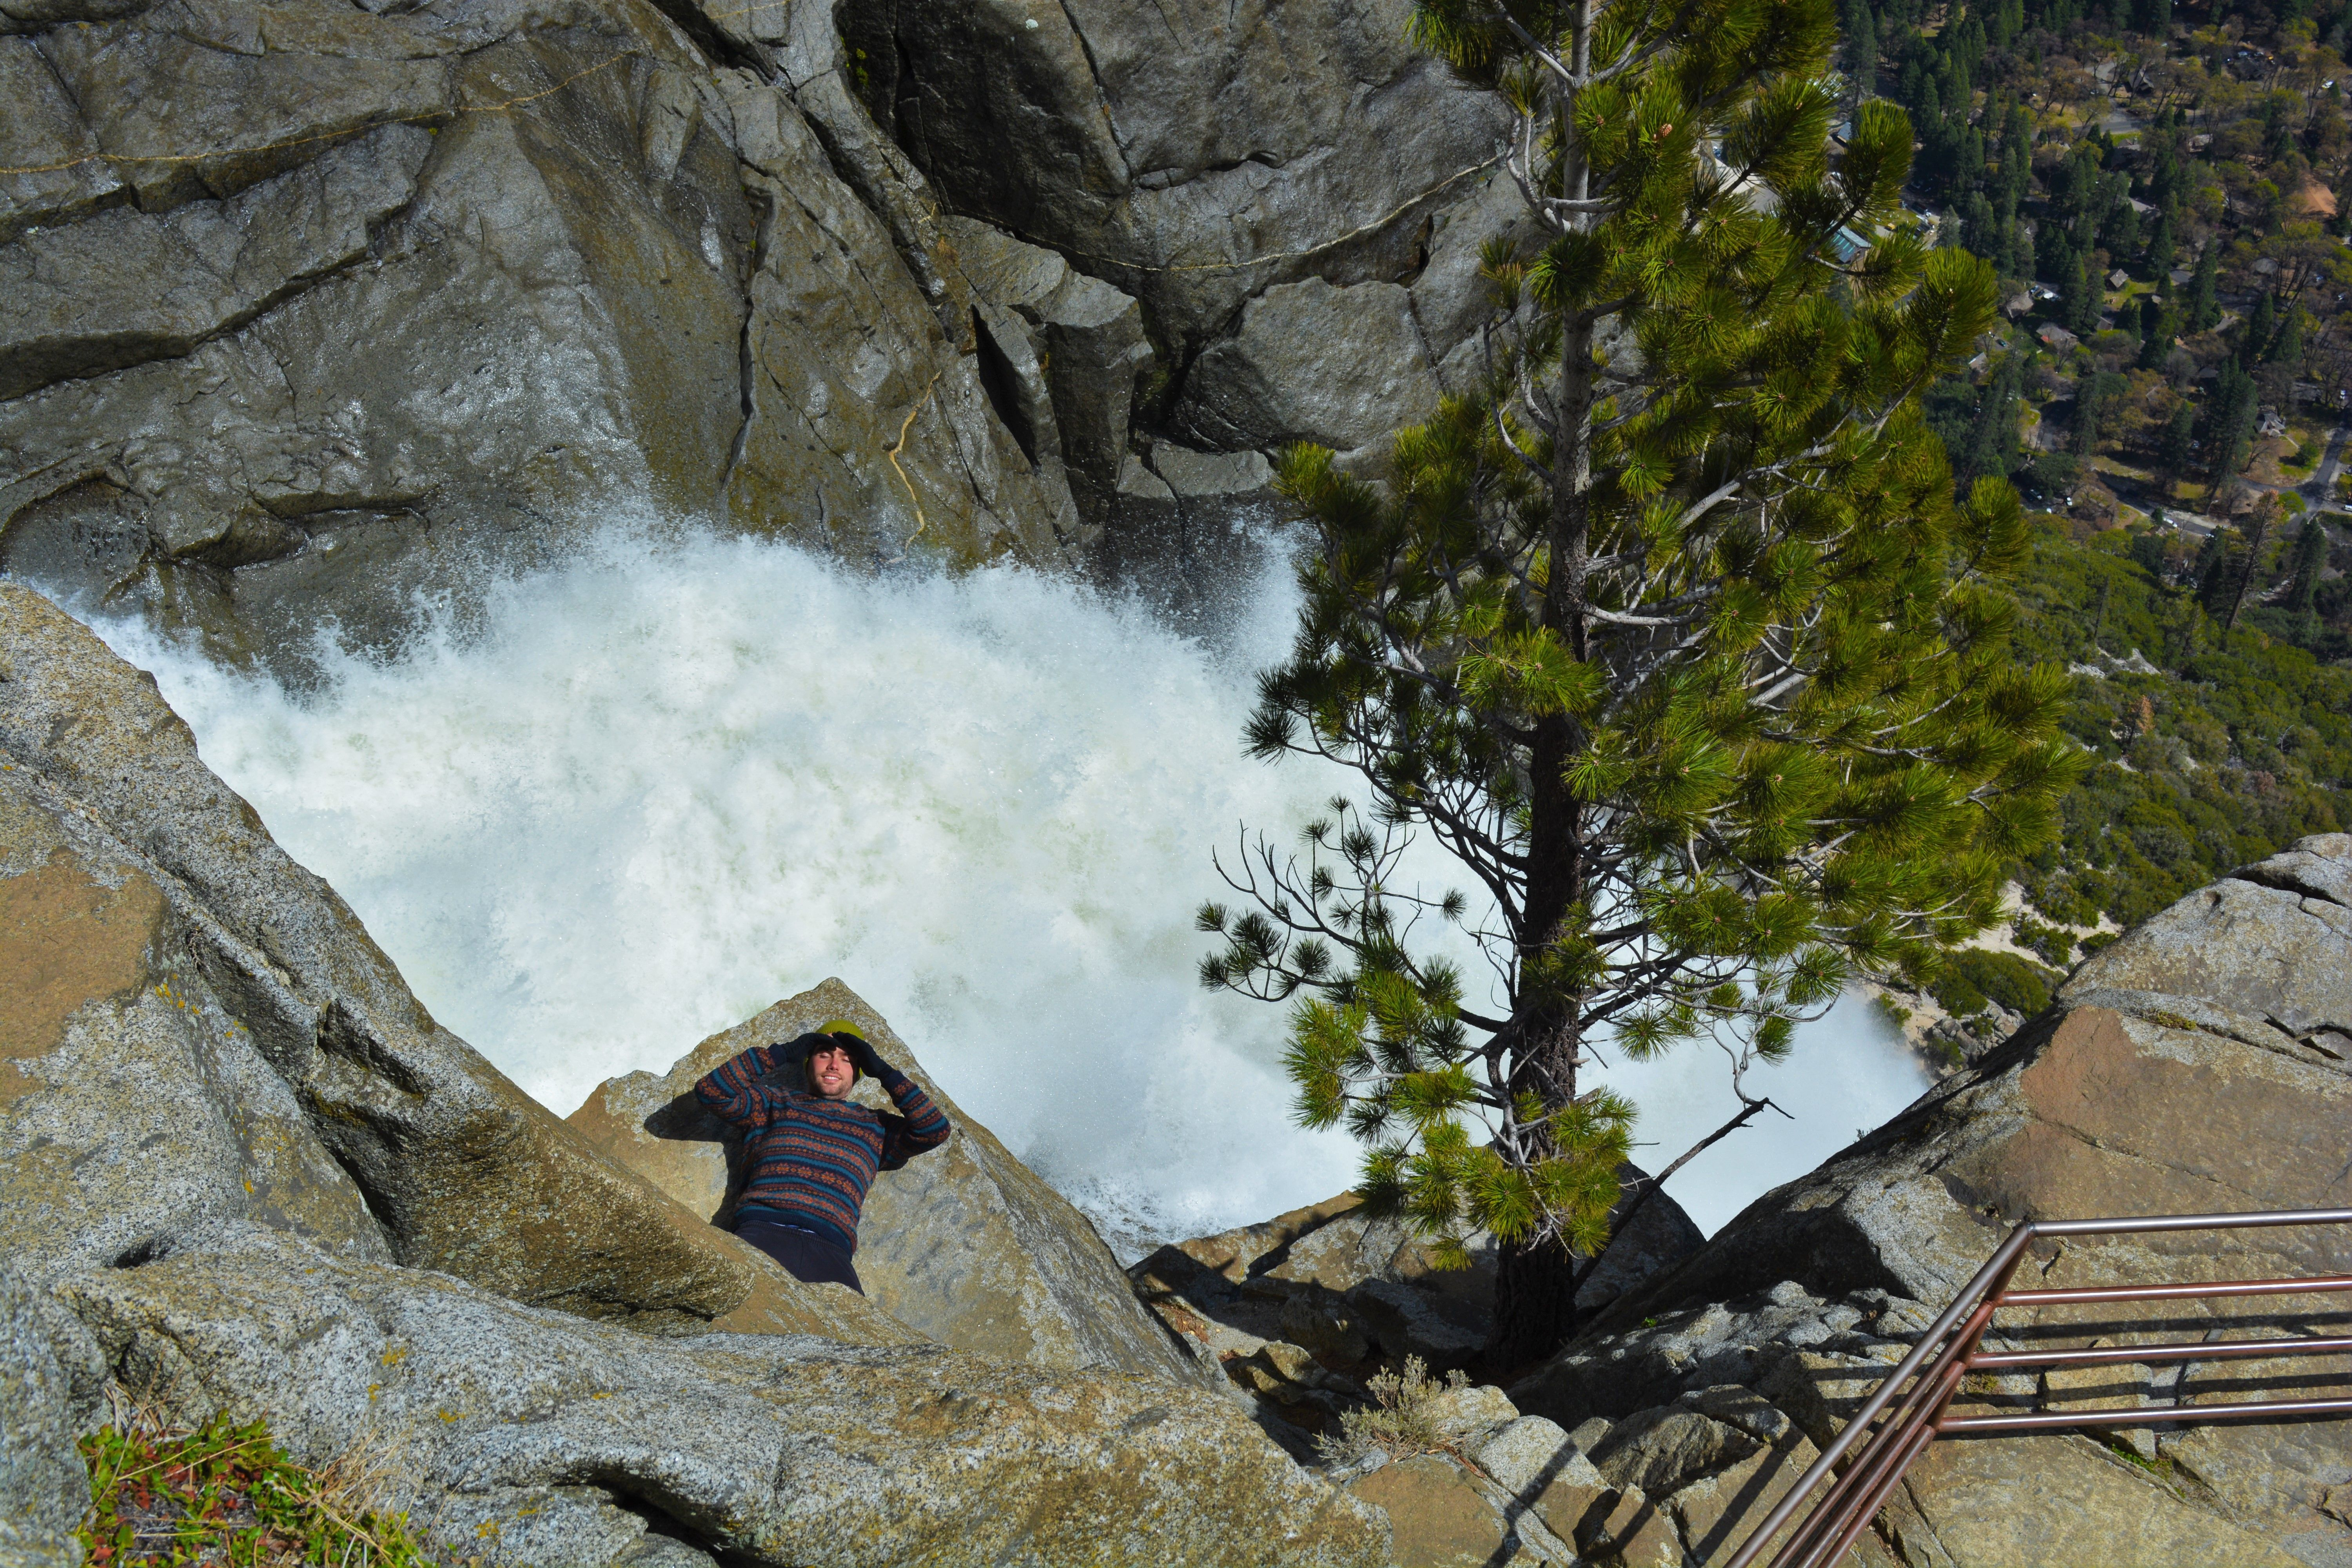 The top of the biggest waterfall in the US is a great place for a nap!